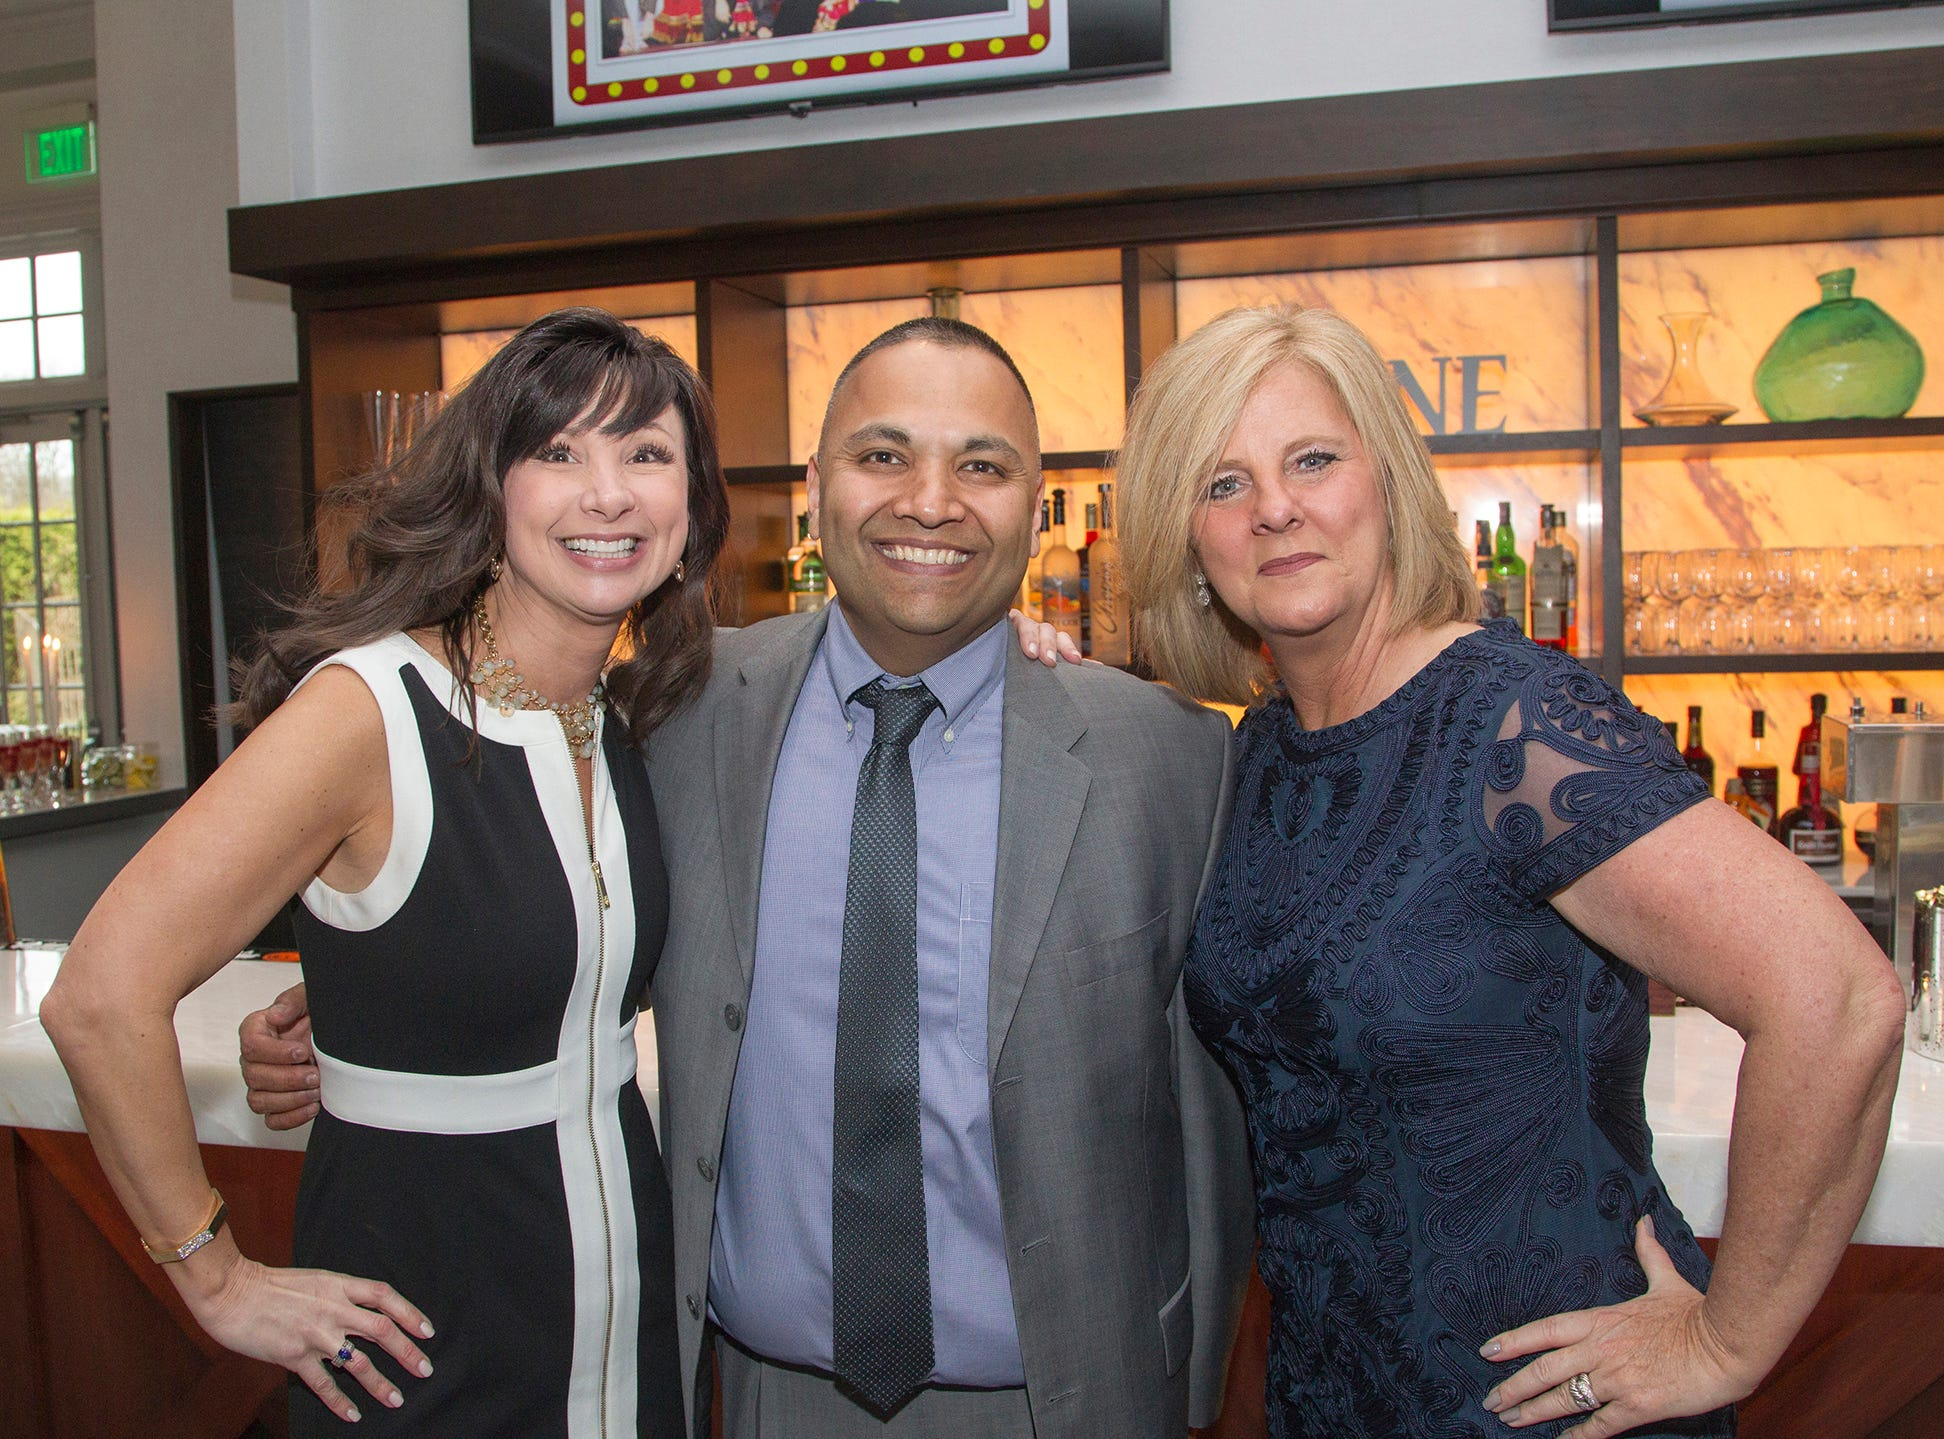 Chrissie Signore, Niles Patel, Gretchen Lee. Saddle River Day Annual Gala at Alpine Country Club 04/13/2019